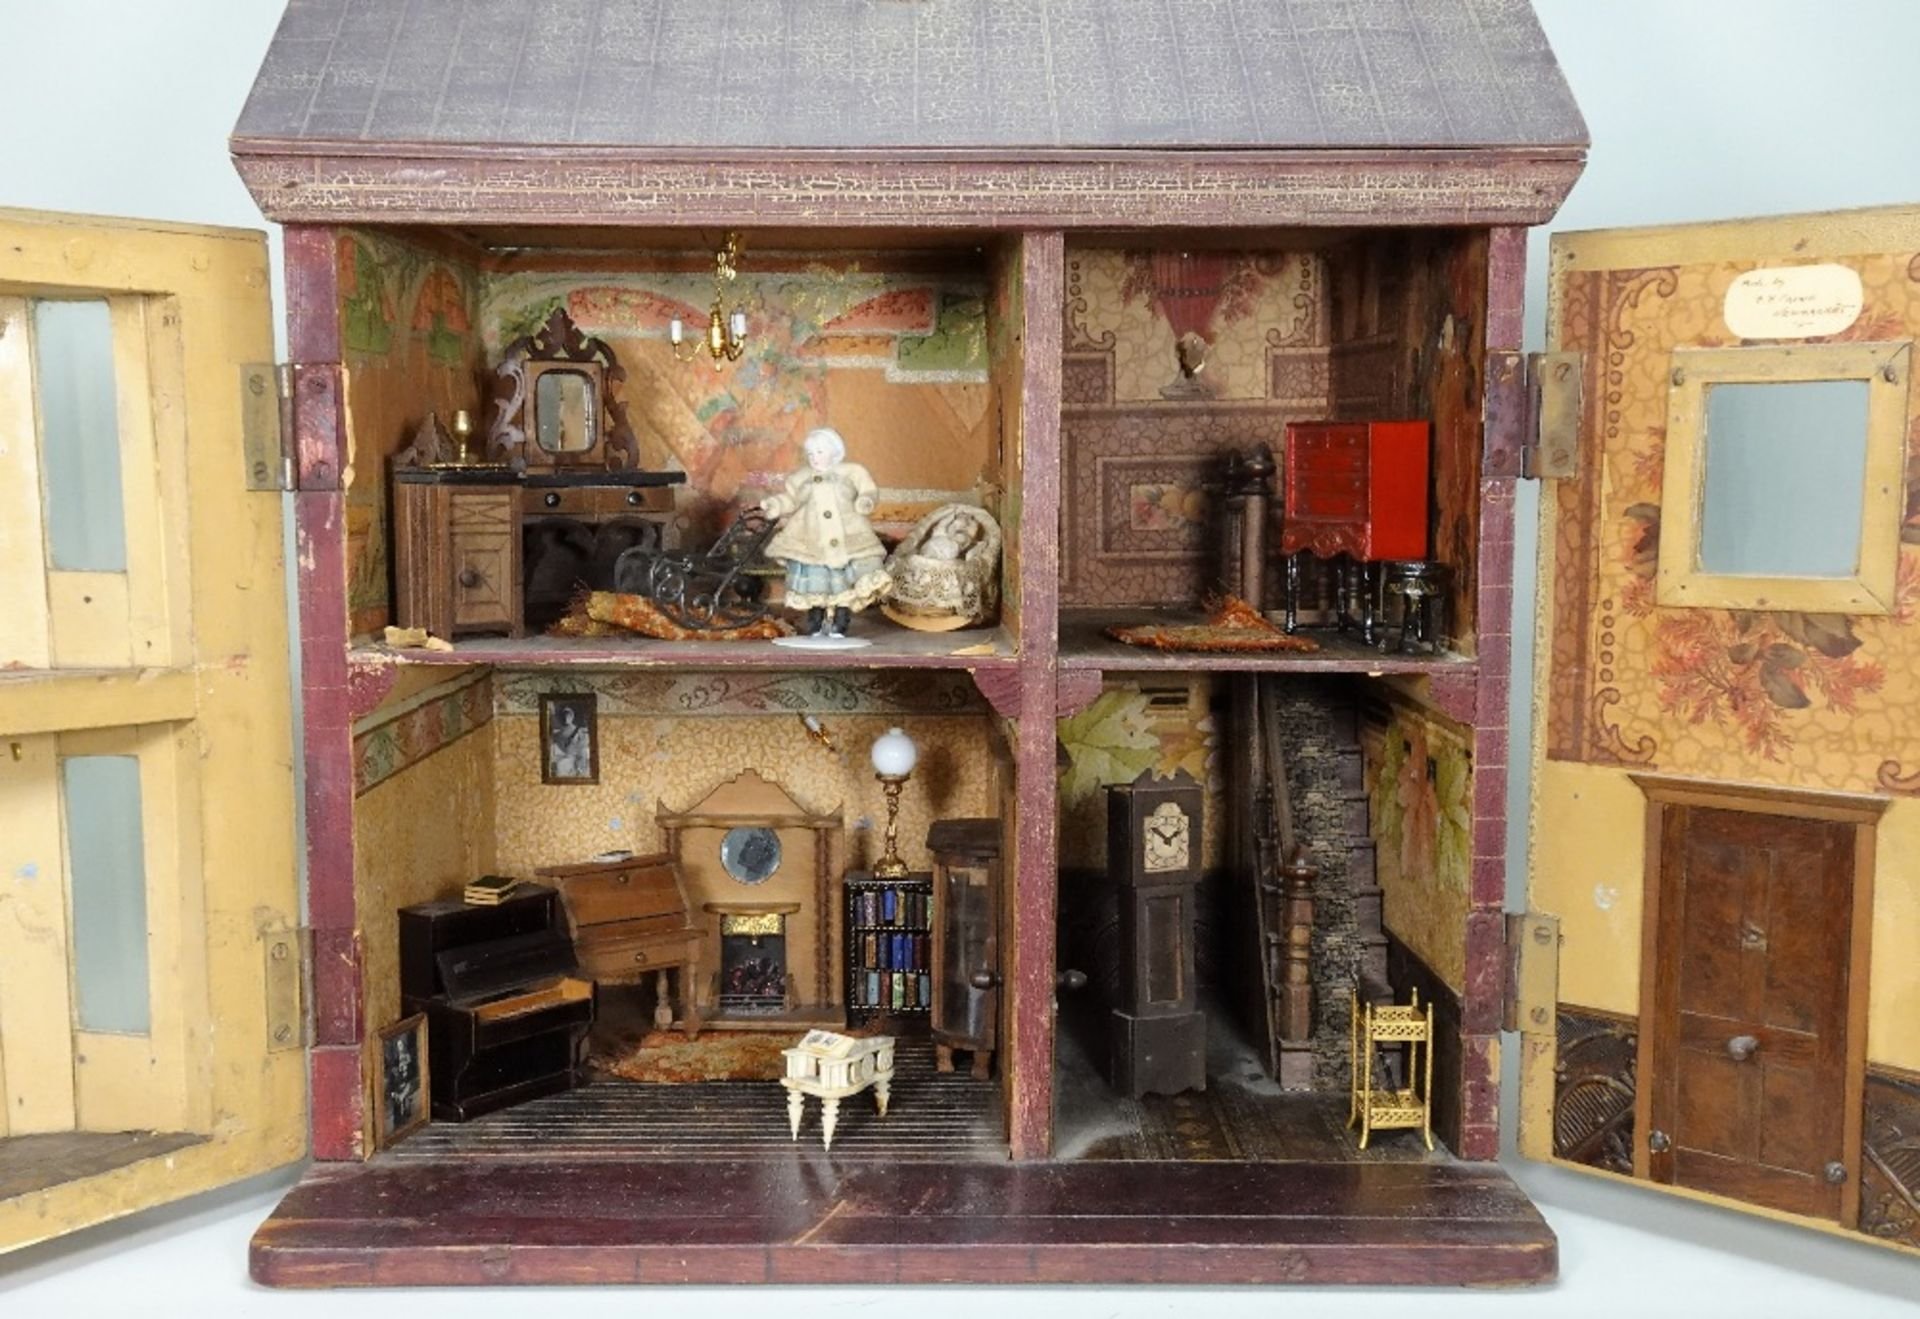 A traditional painted wooden dolls house, made by F.H.Crowe, Newmarket probably 1920s, - Image 2 of 2